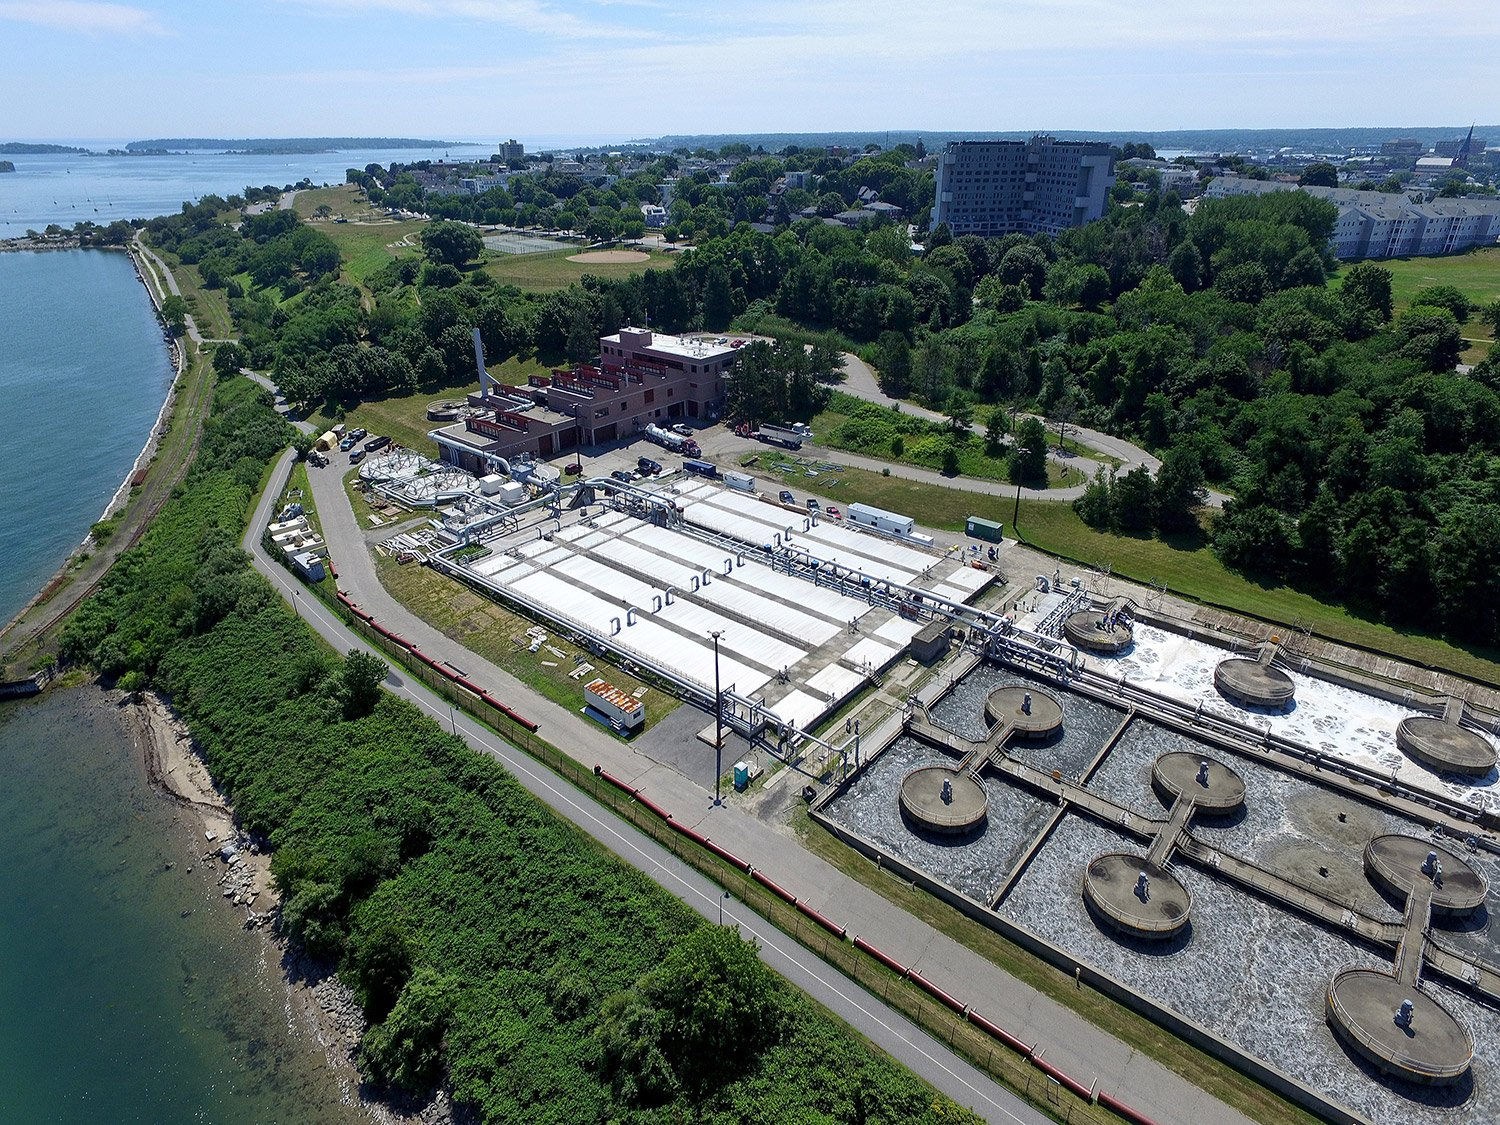 This photo taken from a drone shows the East End Wastewater Treatment Plant, which is getting an $11.4 million upgrade.